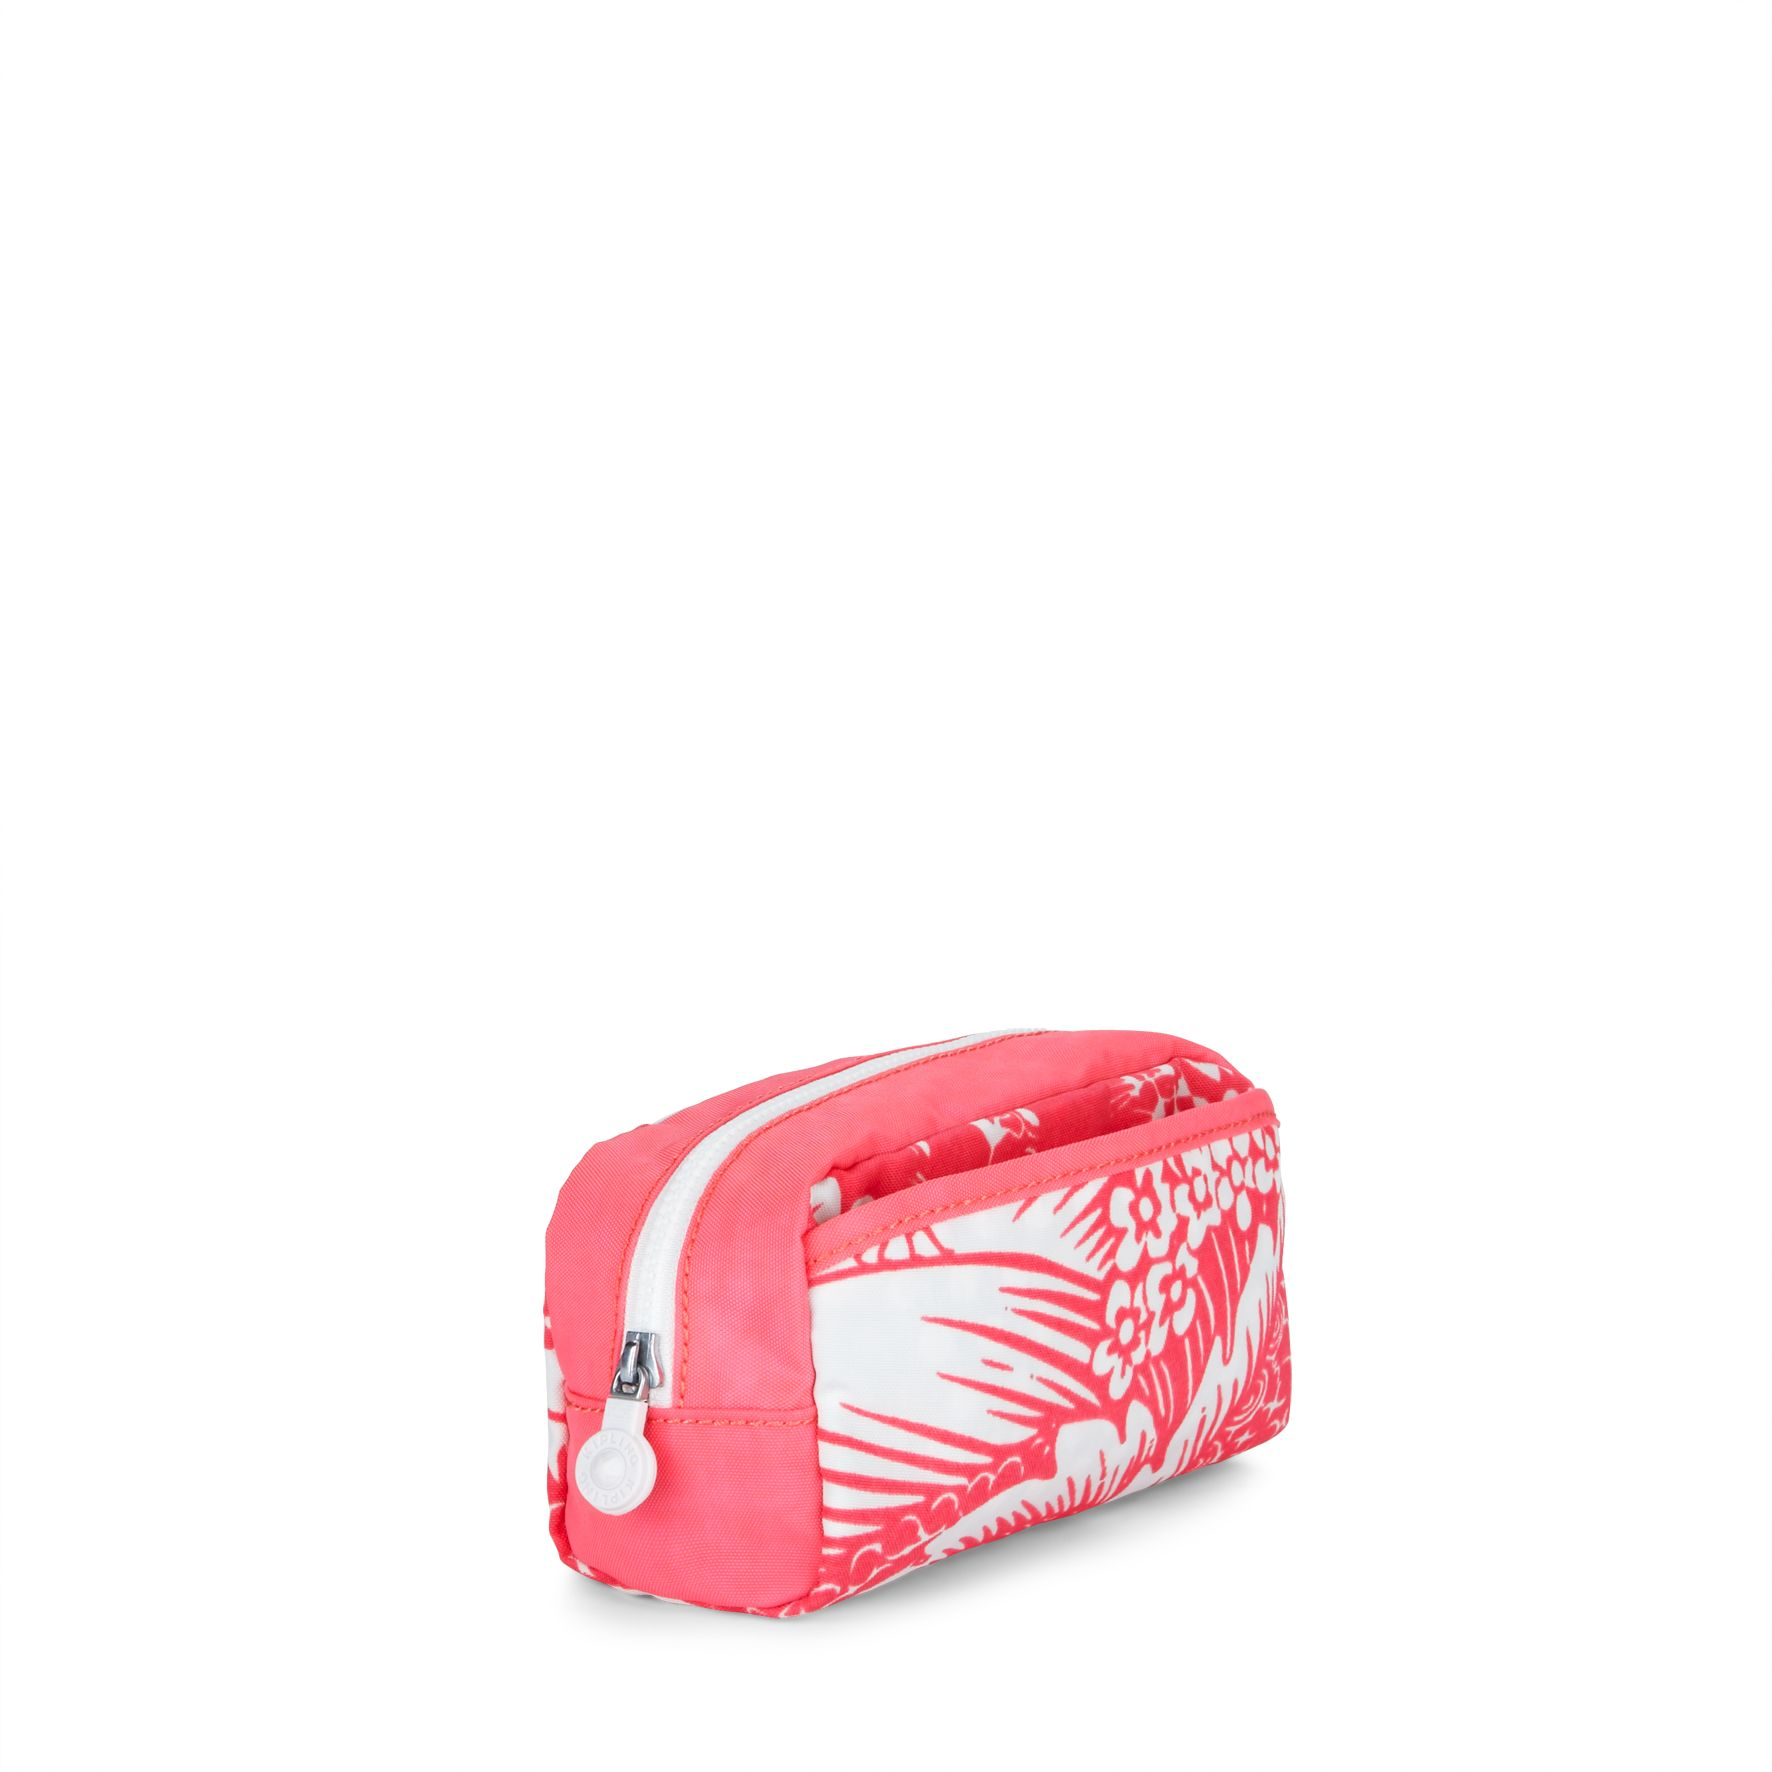 Roozie toiletry bag